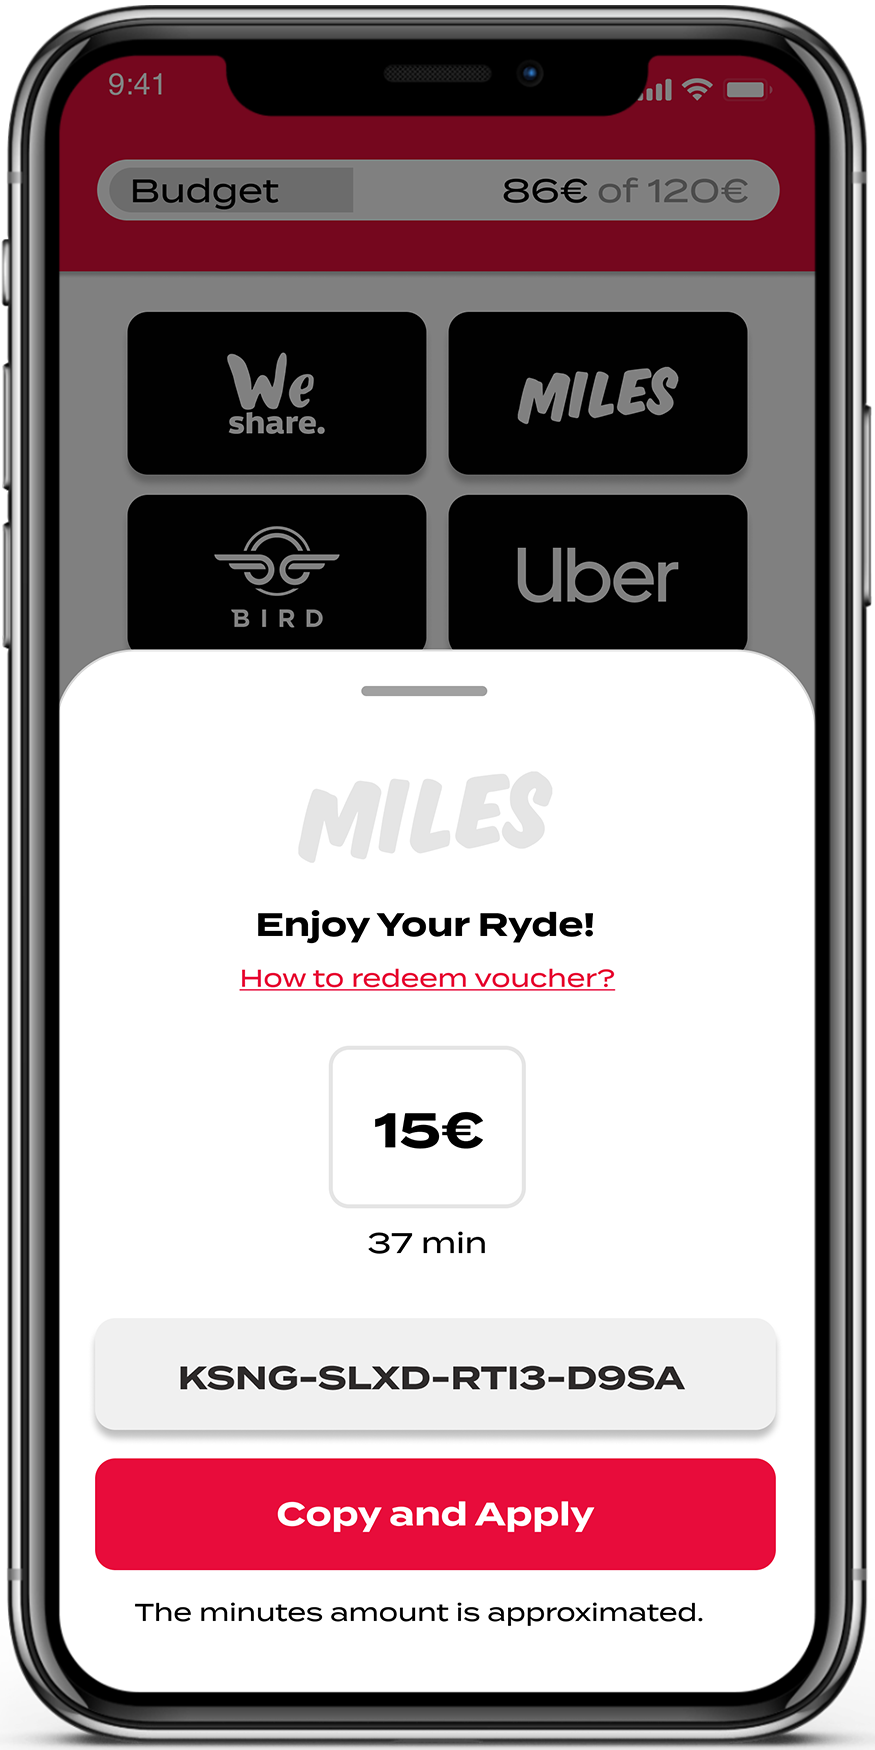 RYDES mobility budget voucher code screen in the mobile application